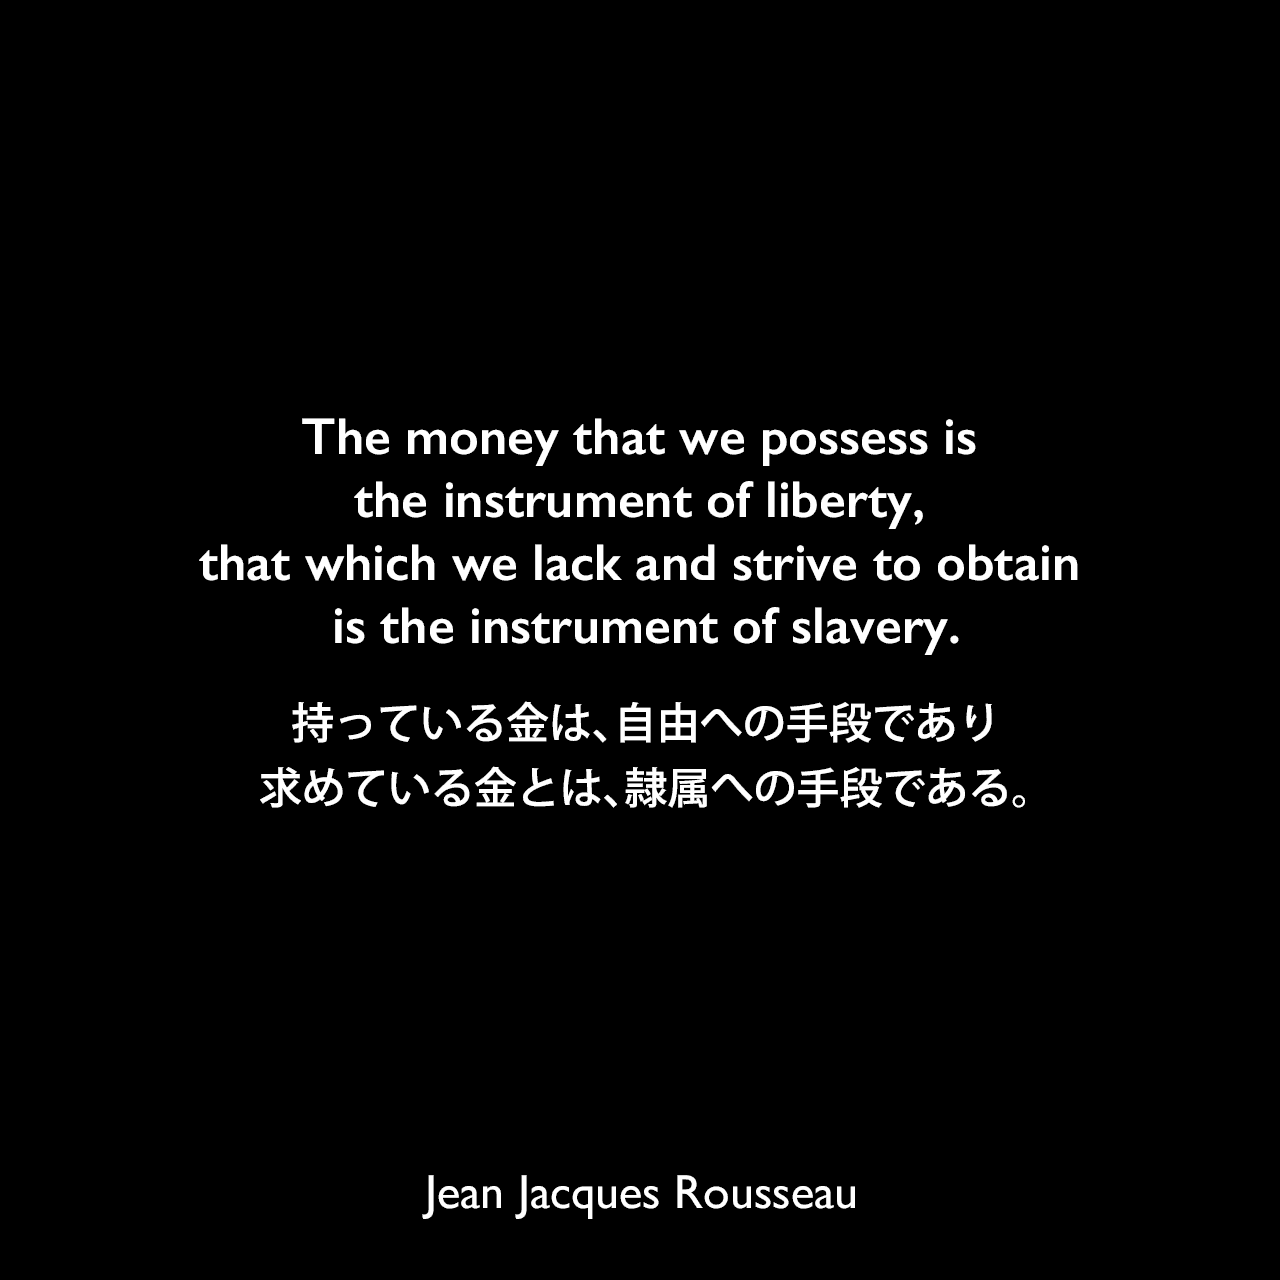 The money that we possess is the instrument of liberty, that which we lack and strive to obtain is the instrument of slavery.持っている金は、自由への手段であり、求めている金とは、隷属への手段である。- ルソーによる本「告白」よりJean Jacques Rousseau